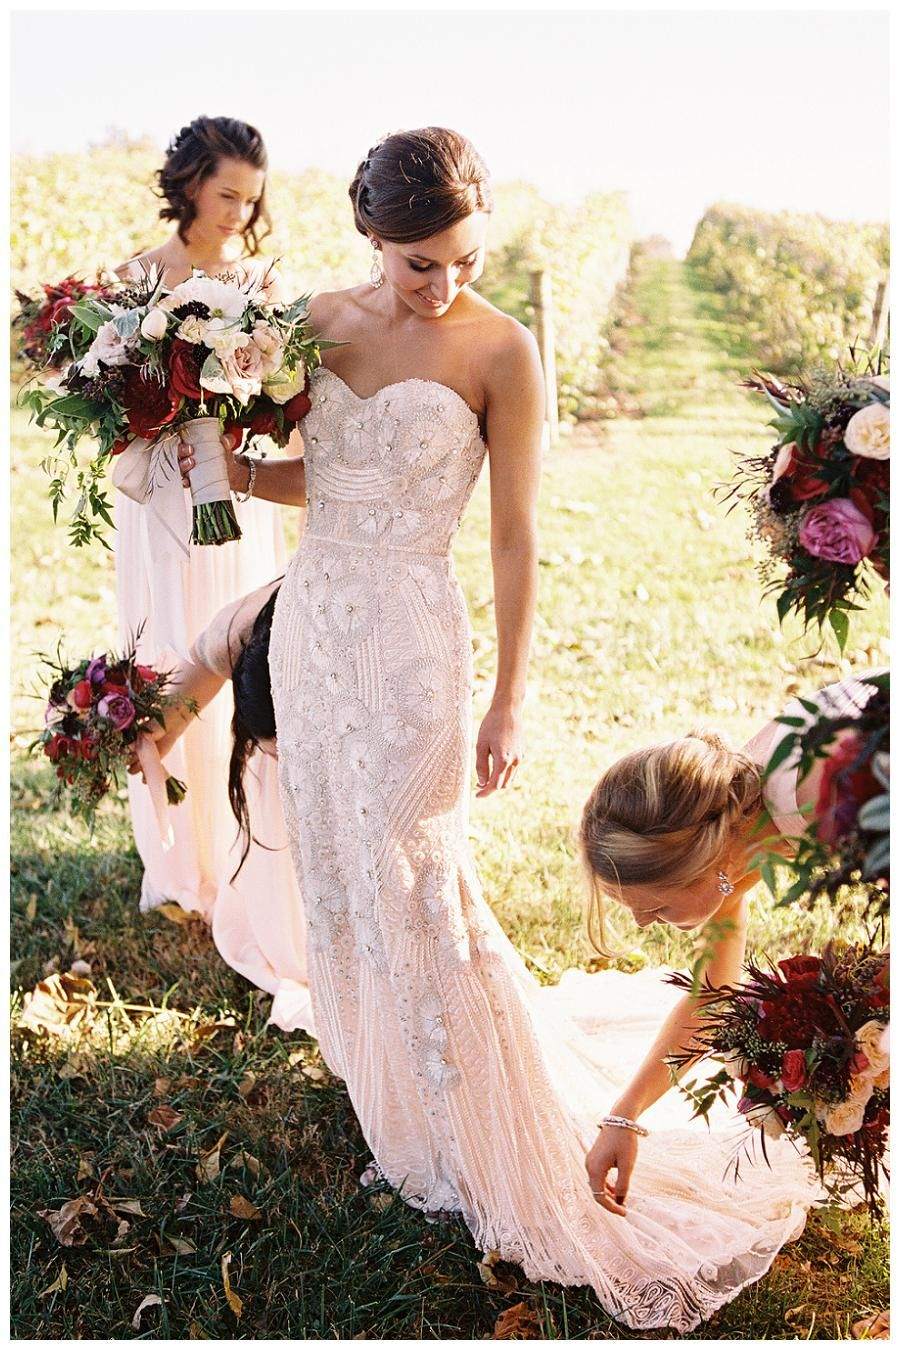 Bride In An Exquisite Wedding Dress By Naeem Khan With A Stunning Fall Bouquet Florals